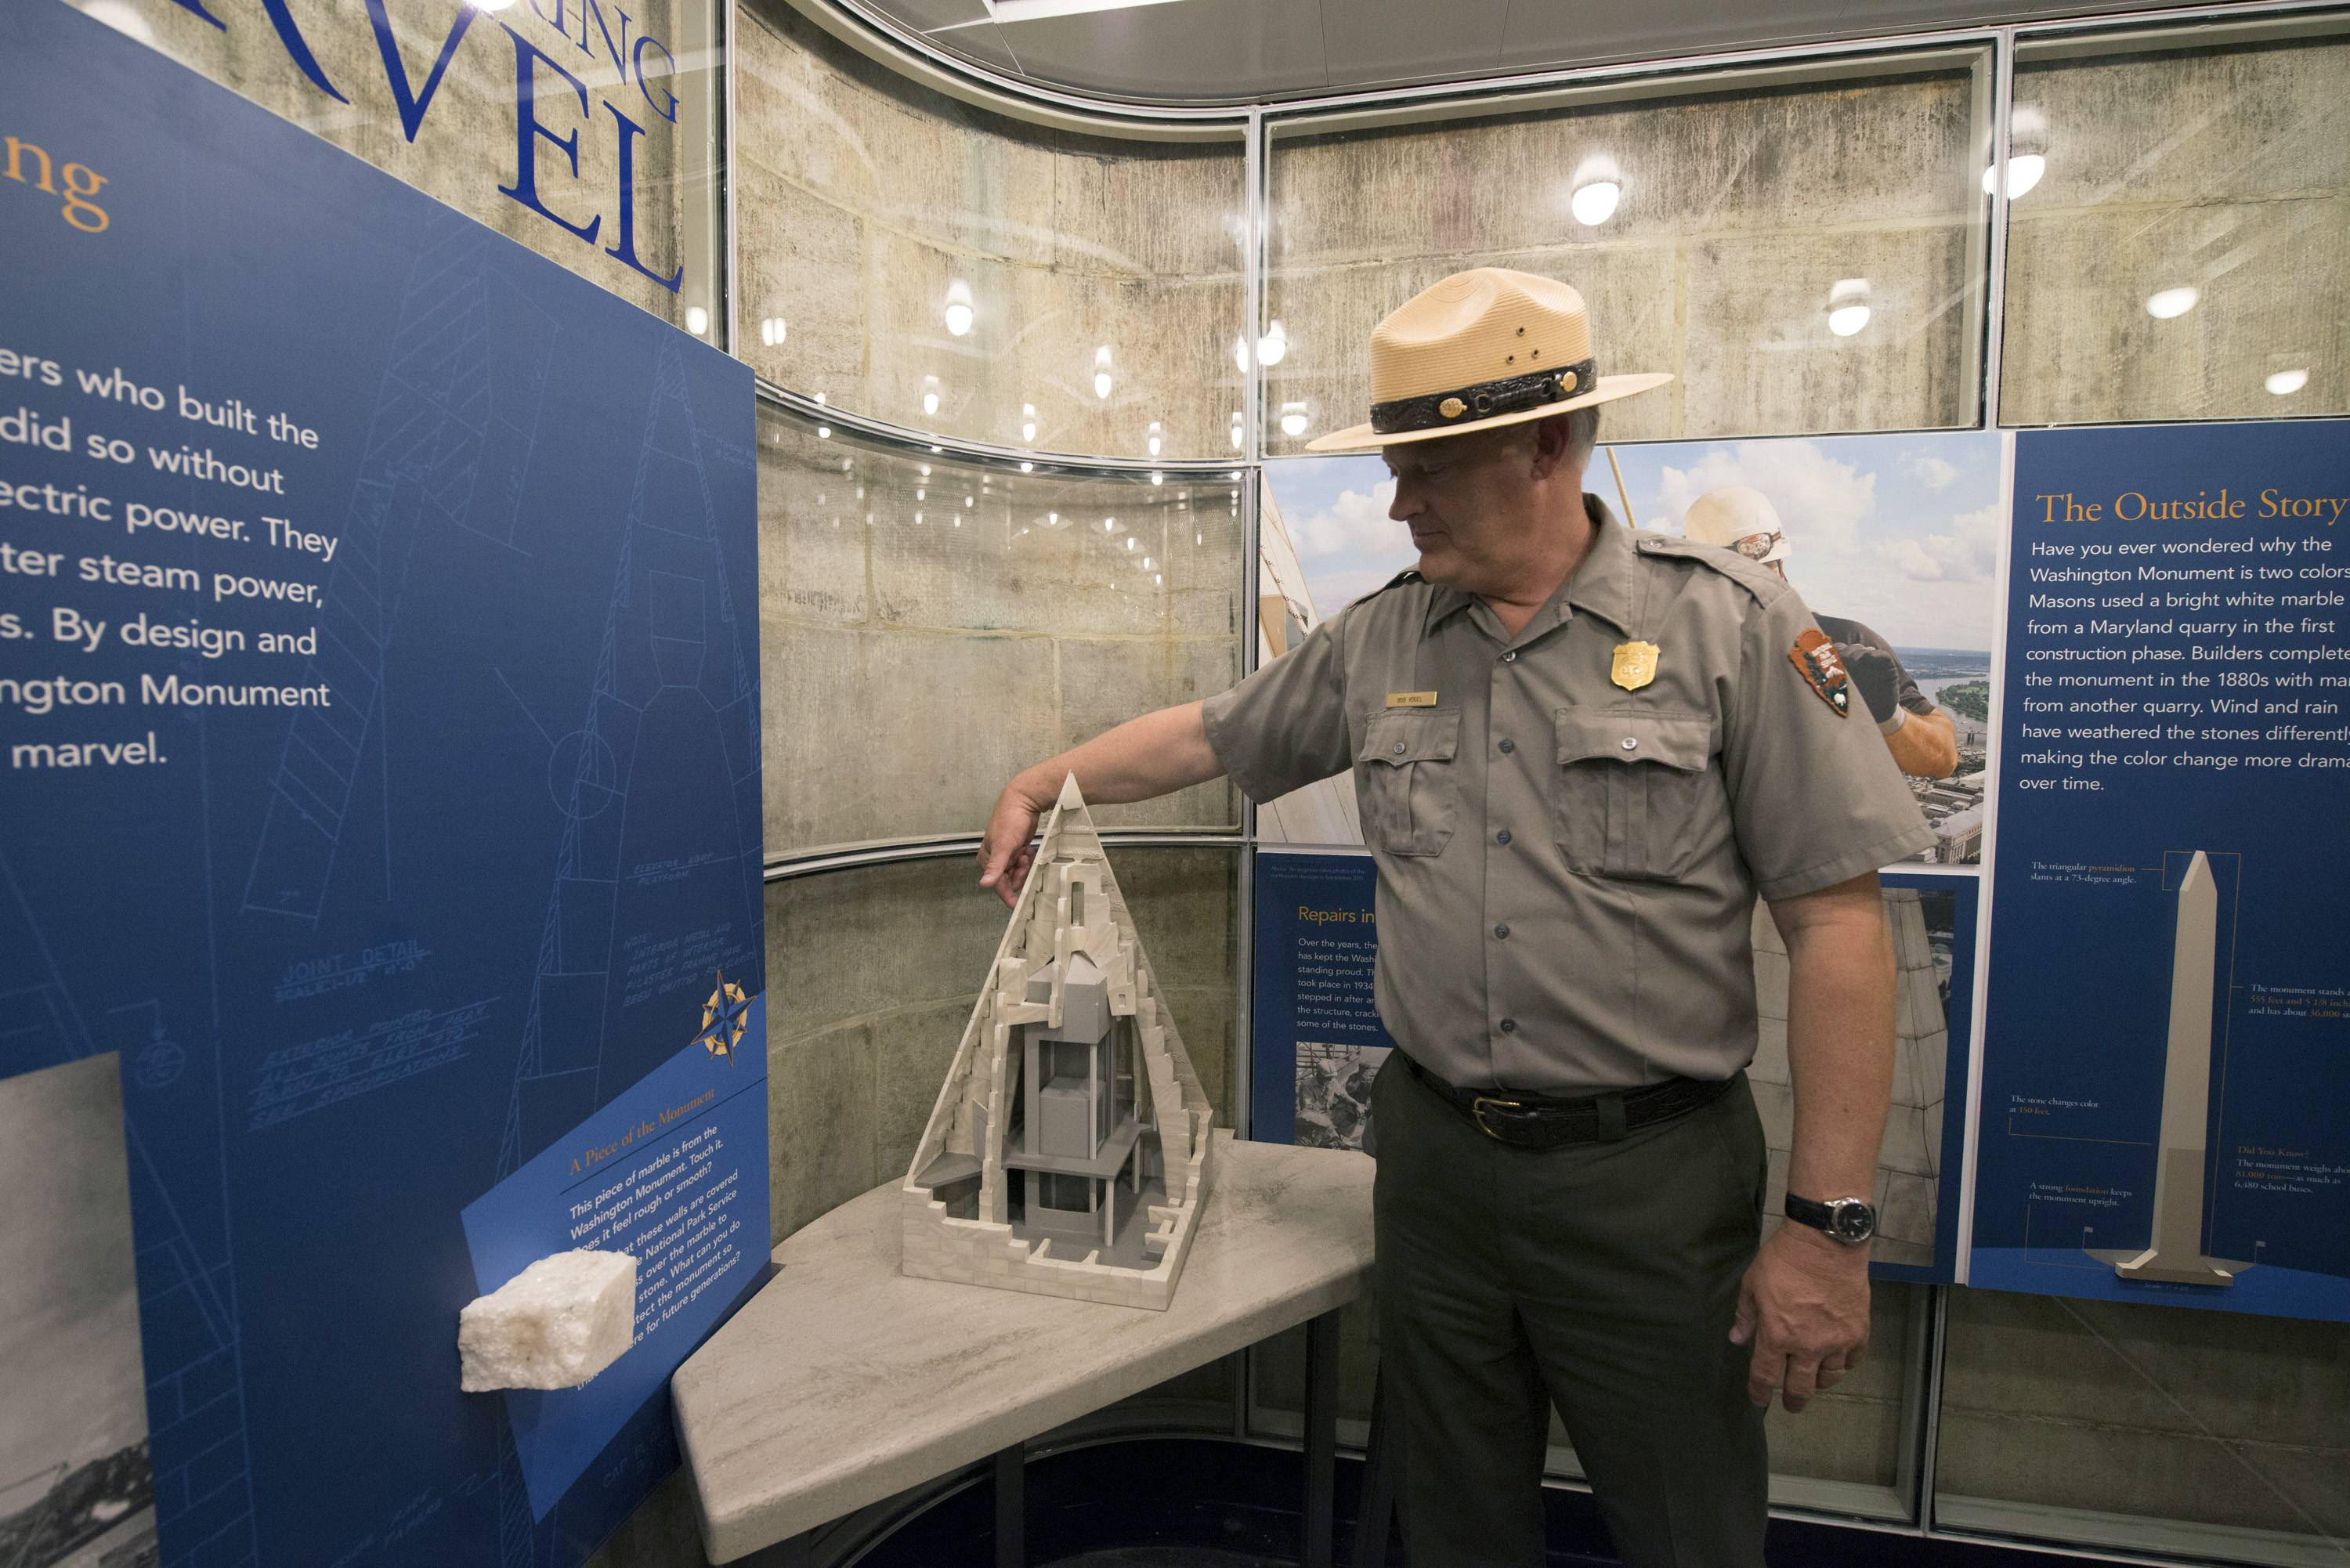 Bob Vogel, superintendent of National Mall and Memorial Parks, points out the location of a repaired crack on a scale model in a new exhibit inside the Washington Monument during a press preview Saturday prior to the re-opening of the monument.